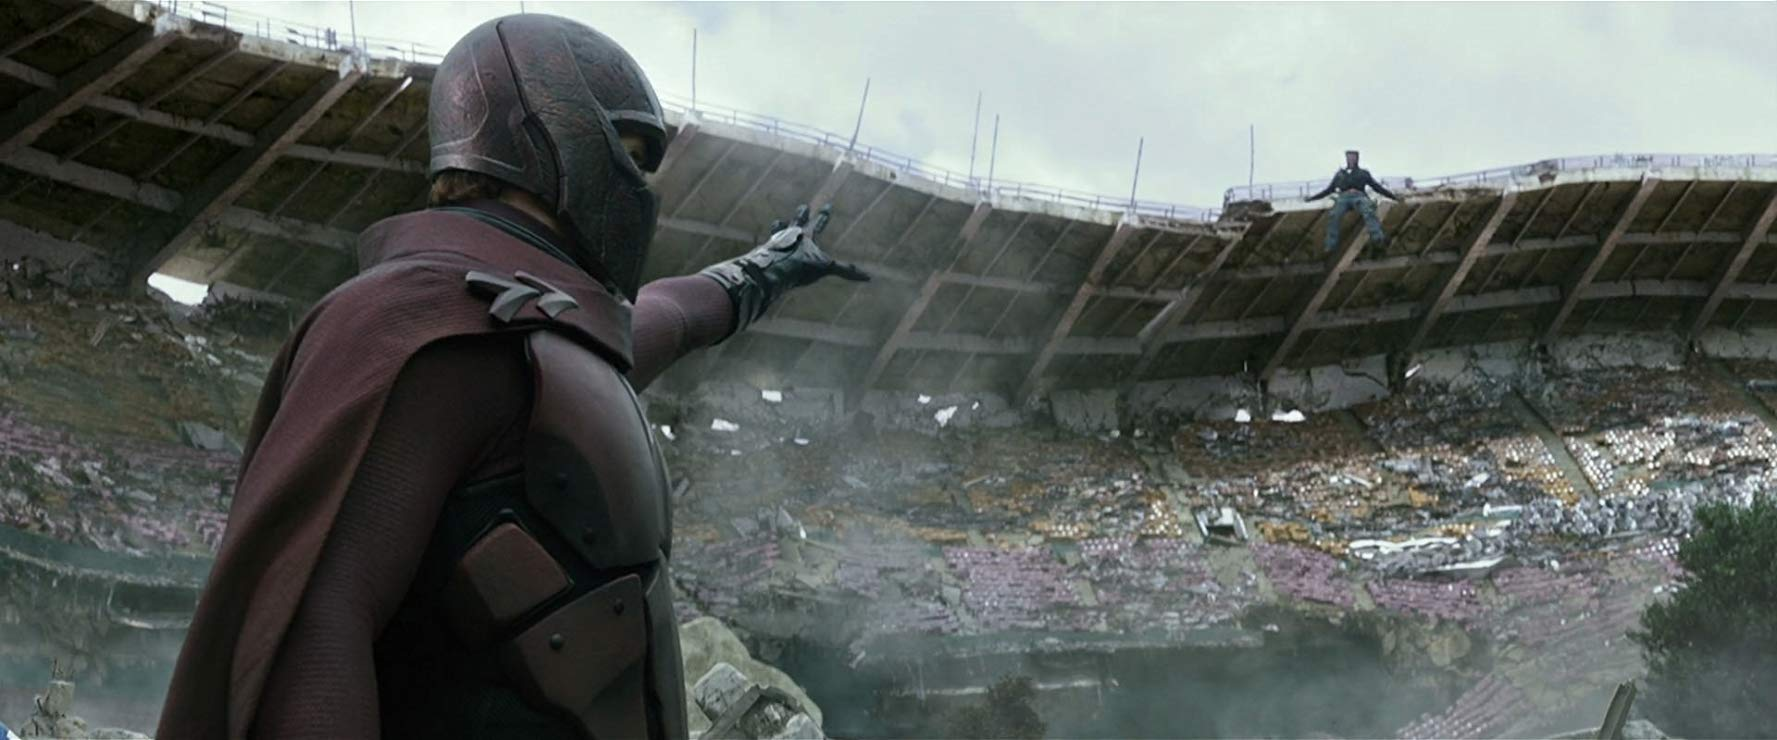 Magneto (Michael Fassbender) lifts the stadium in X-Men: Days of Future Past (2014)